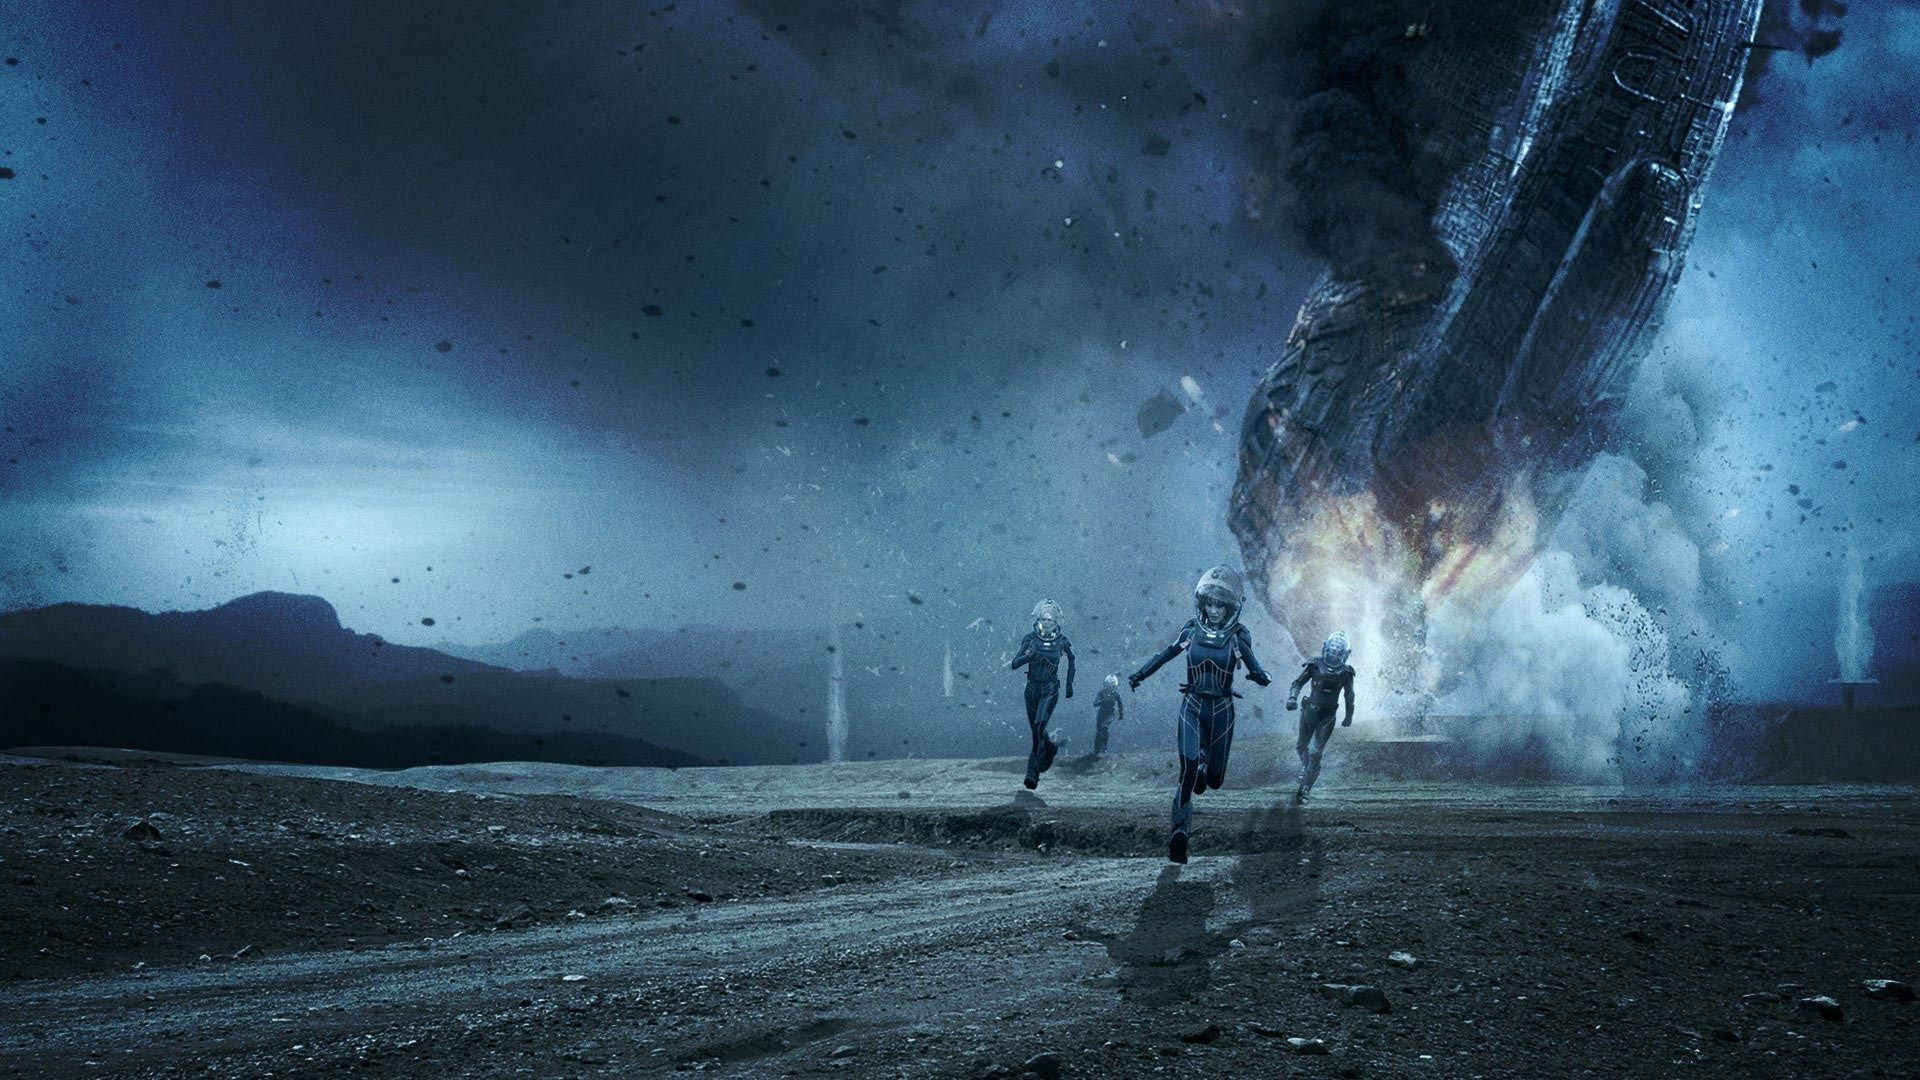 Prometheus Full Hd Wallpaper Photo 1920x1080 Prometheus Movie Action Sci Fi Movies Art Journal Prompts